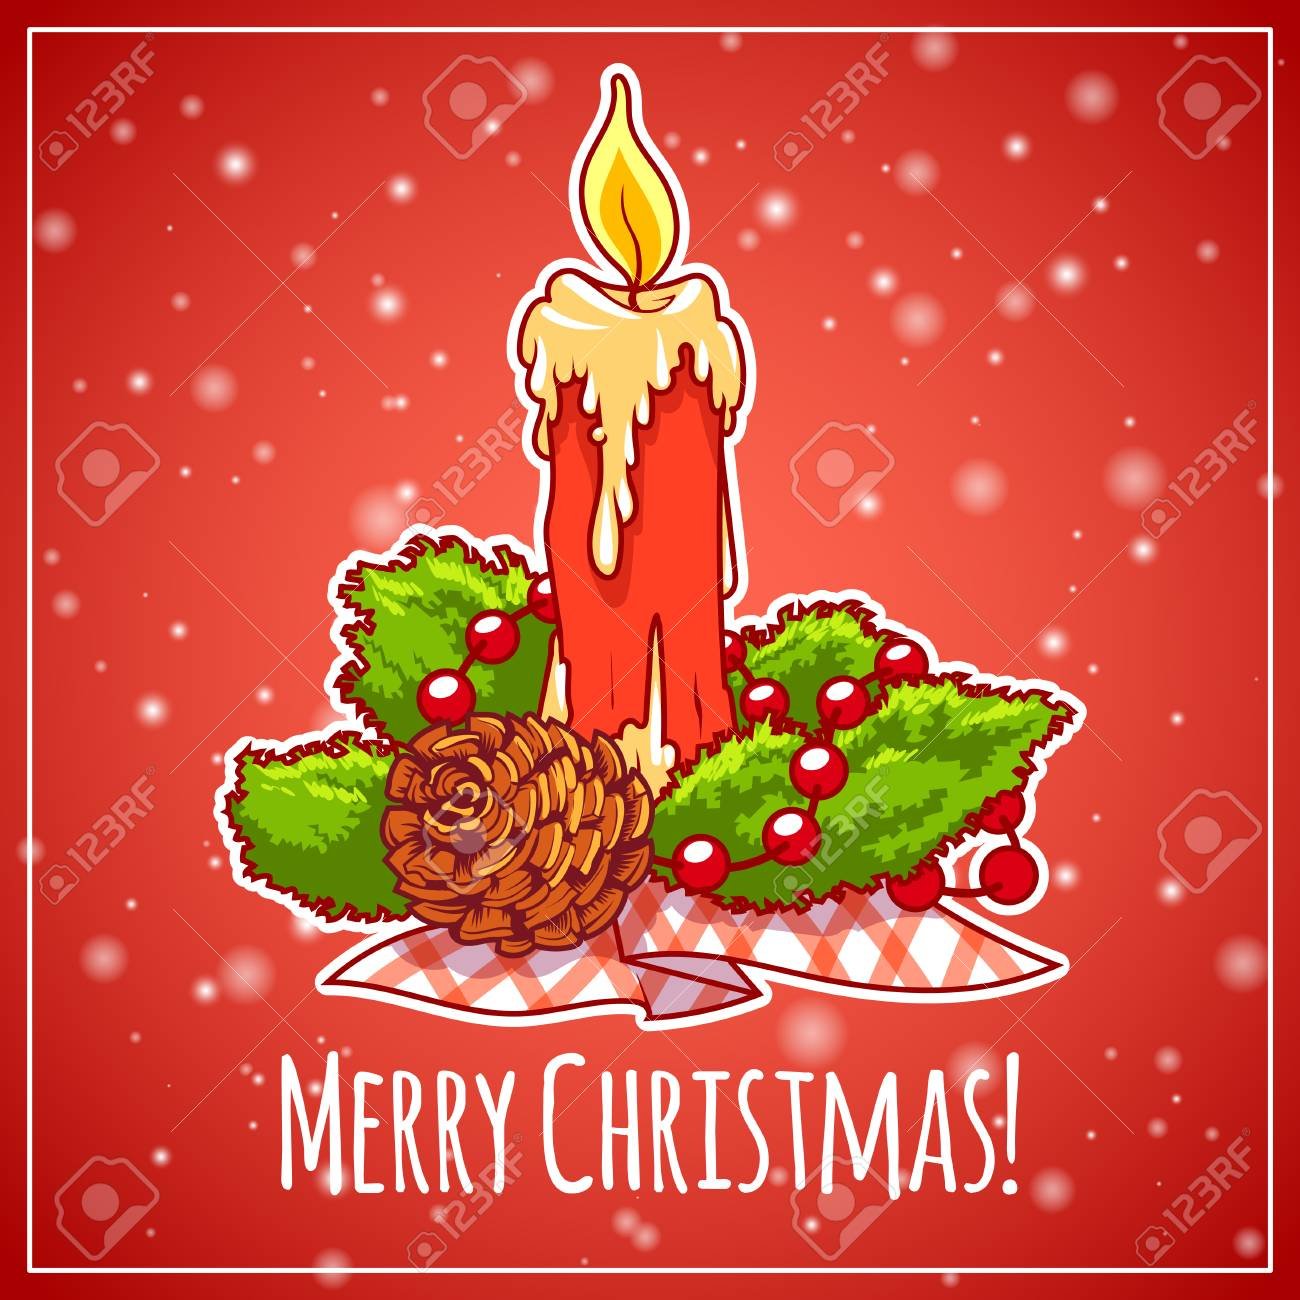 Christmas Card In Red Tones Christmas Candle On Red Background